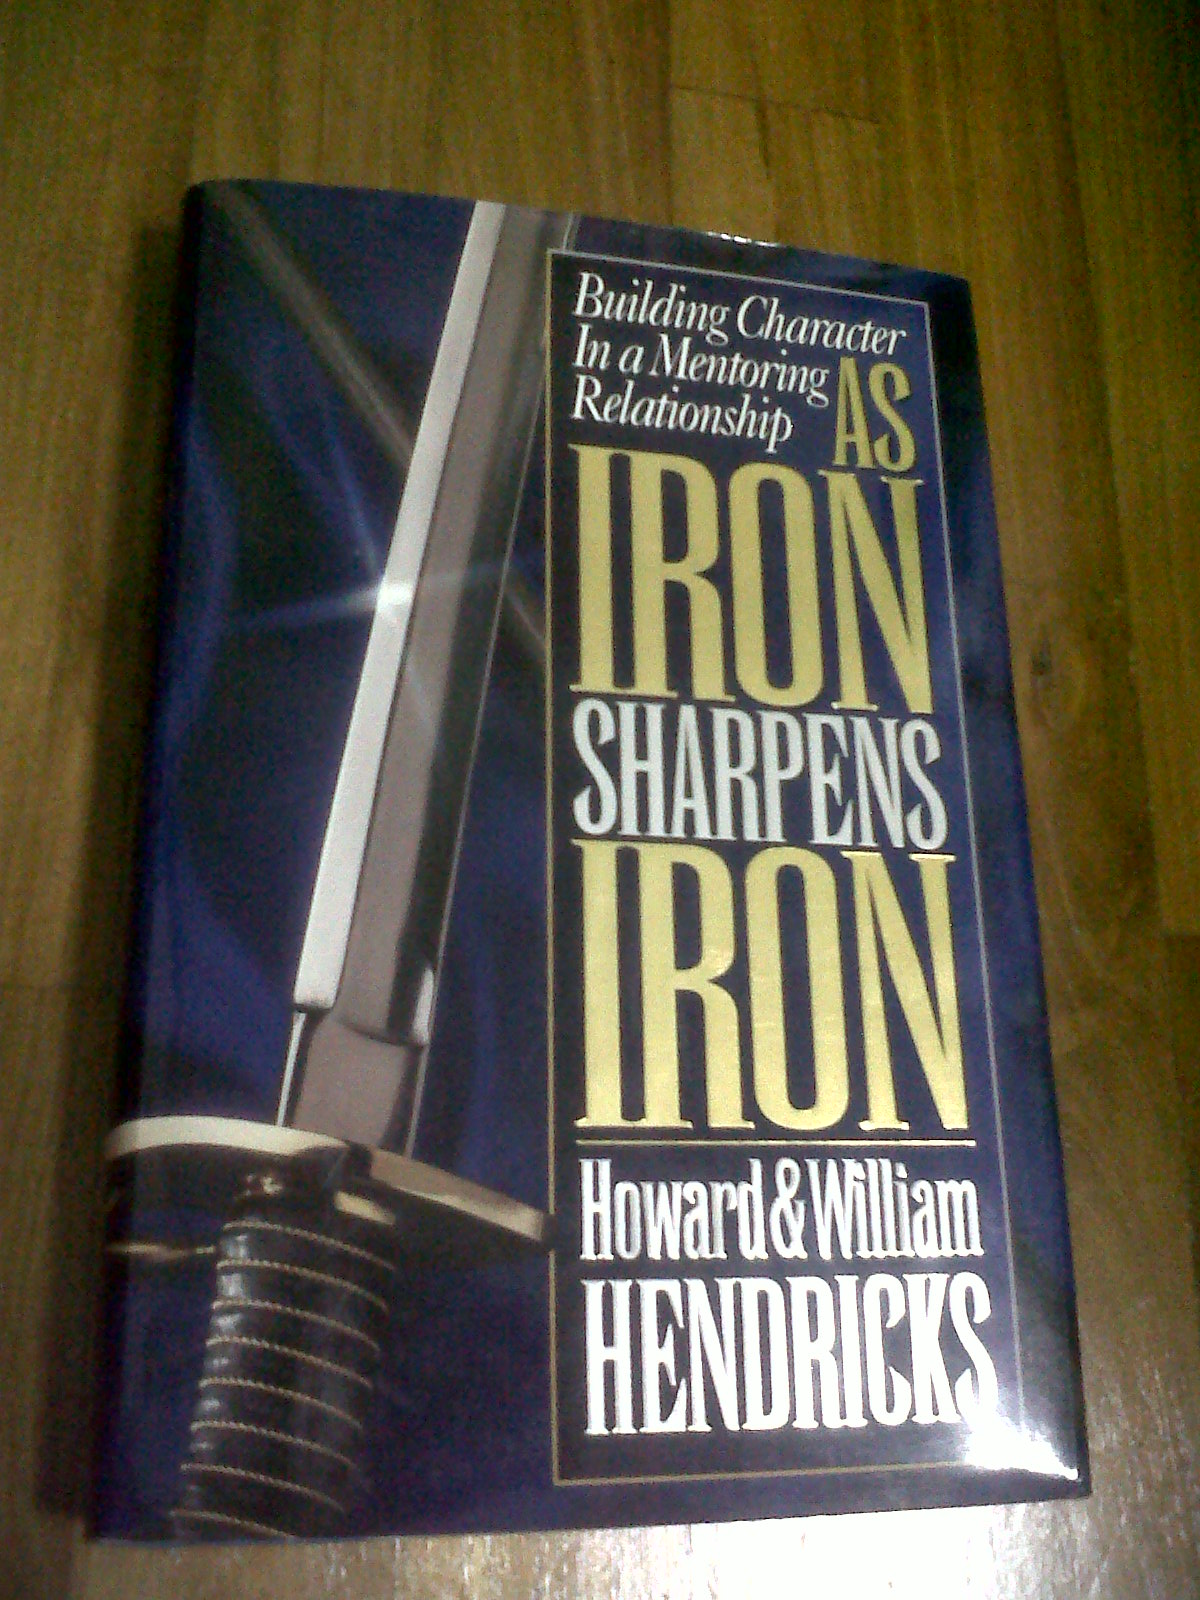 As iron sharpens iron book